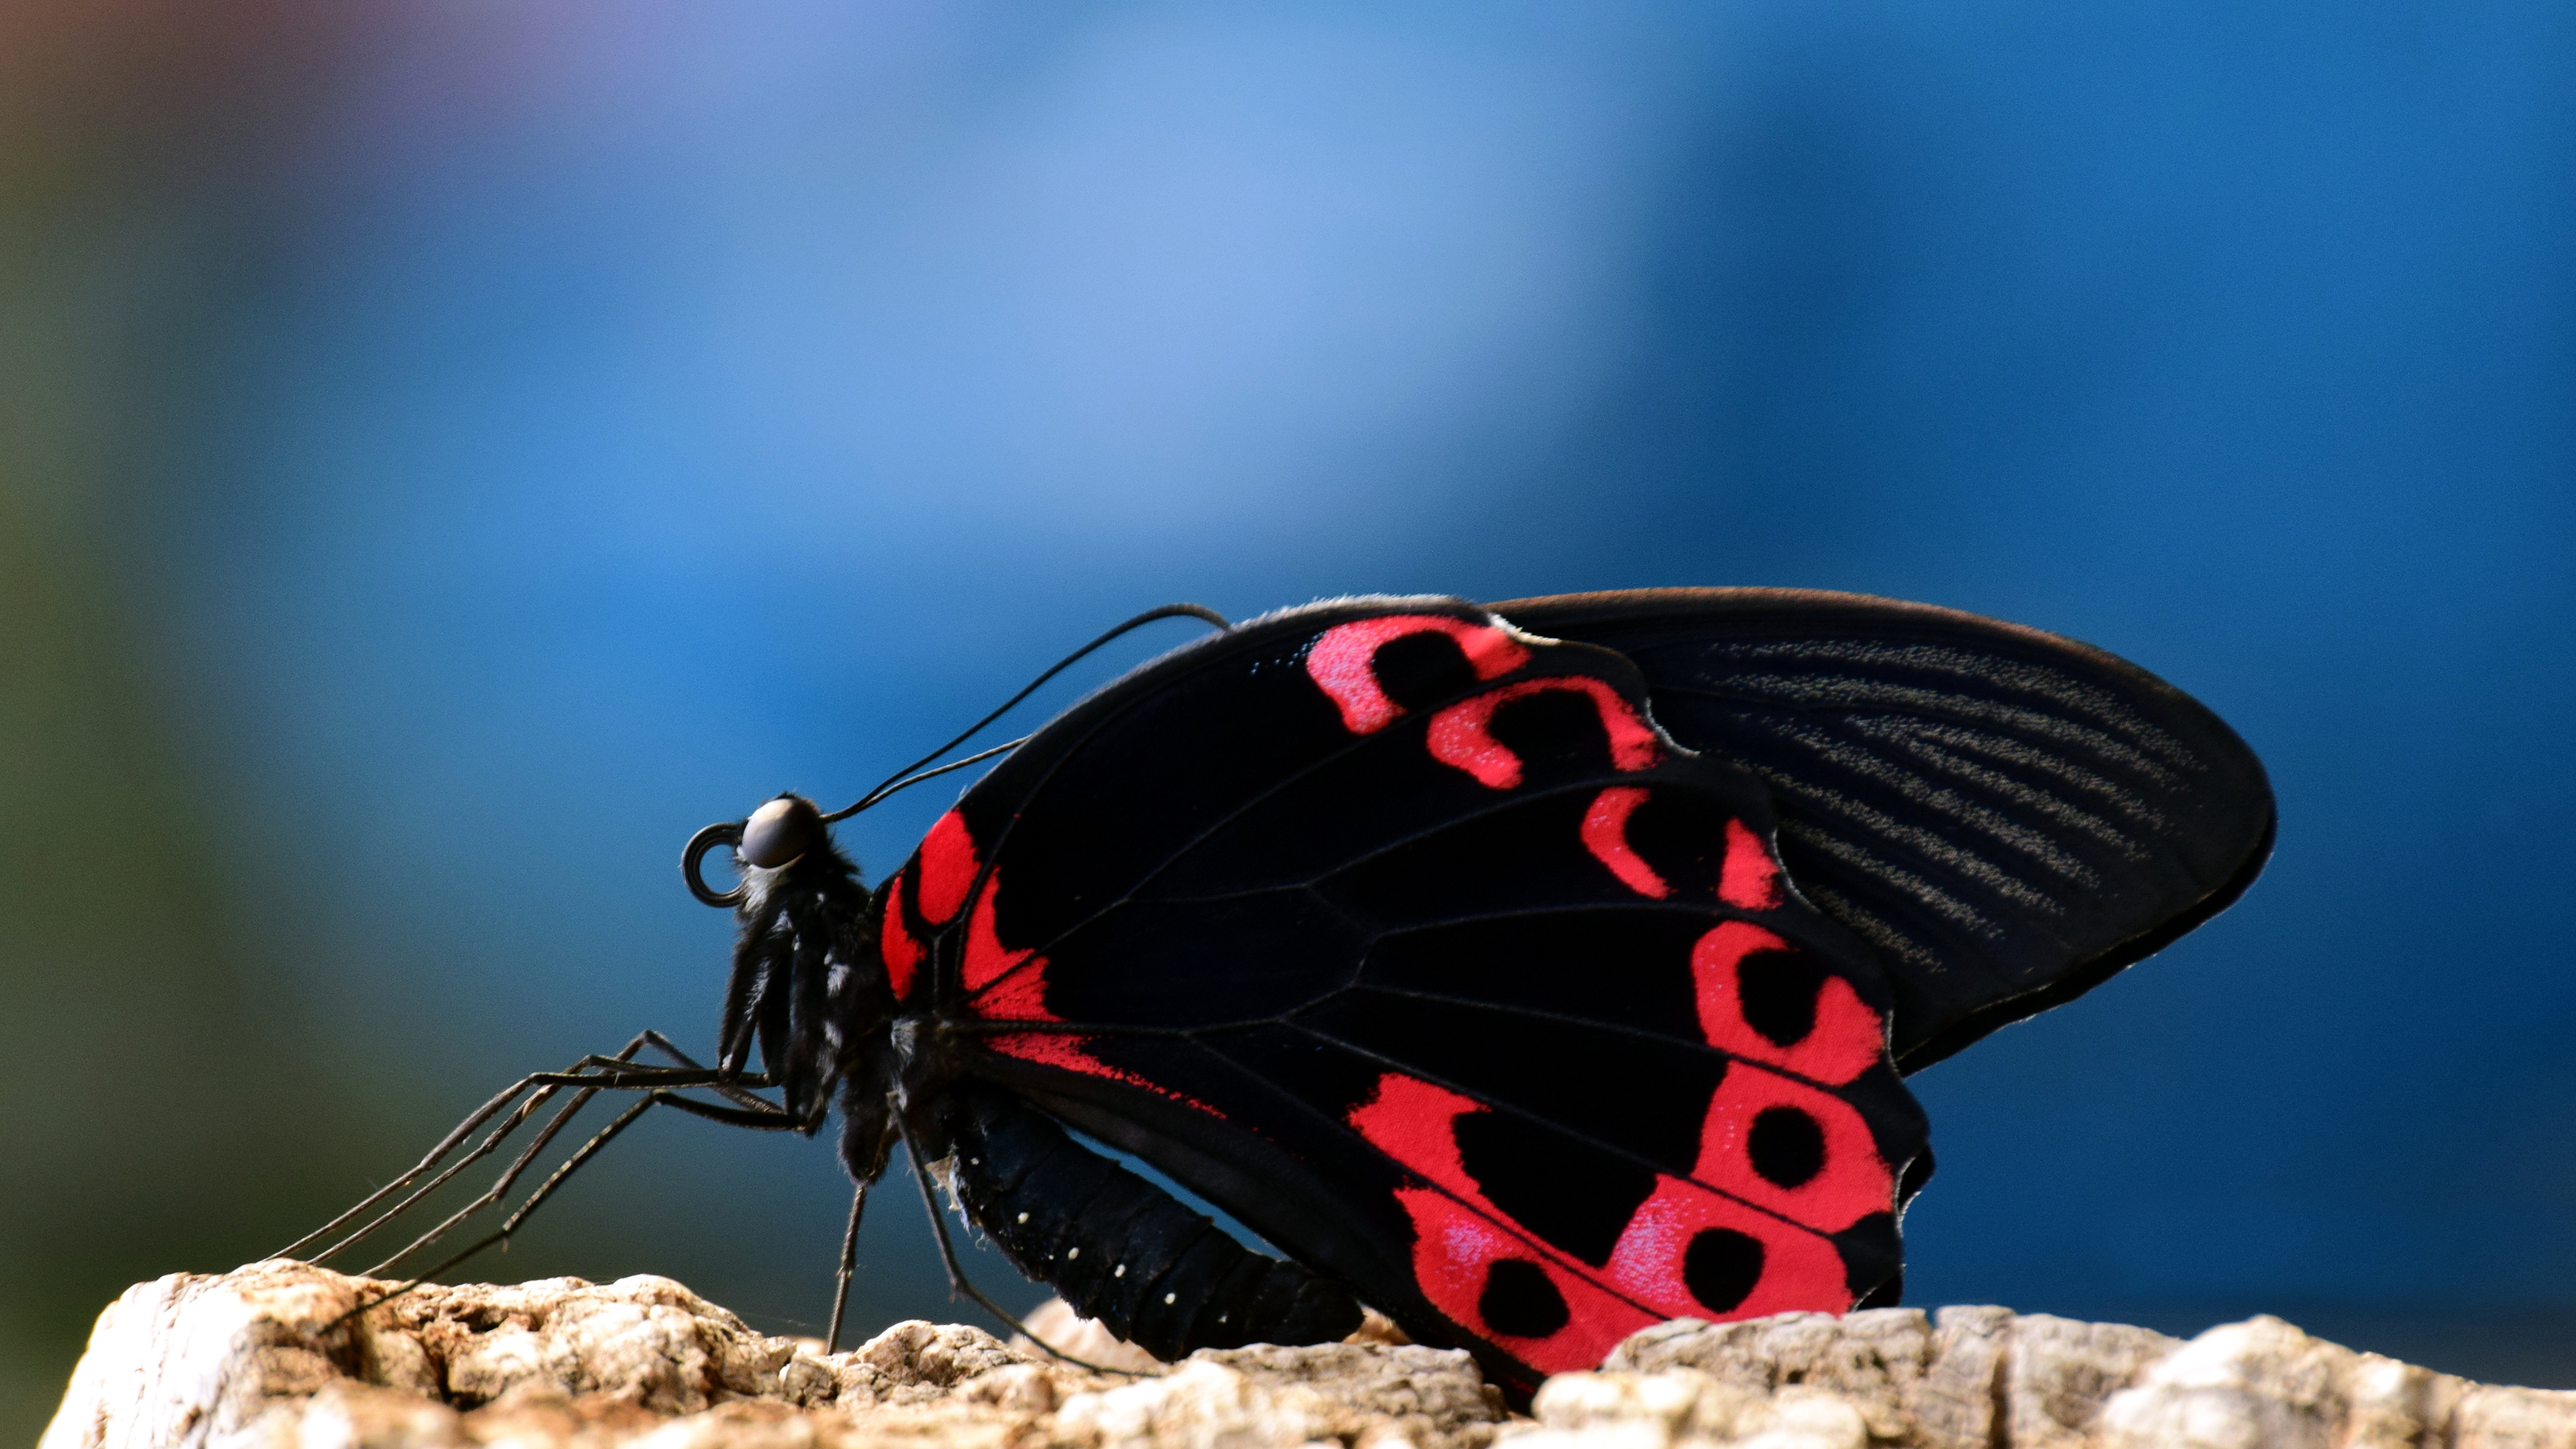 Sitting Butterfly Chromebook Wallpaper